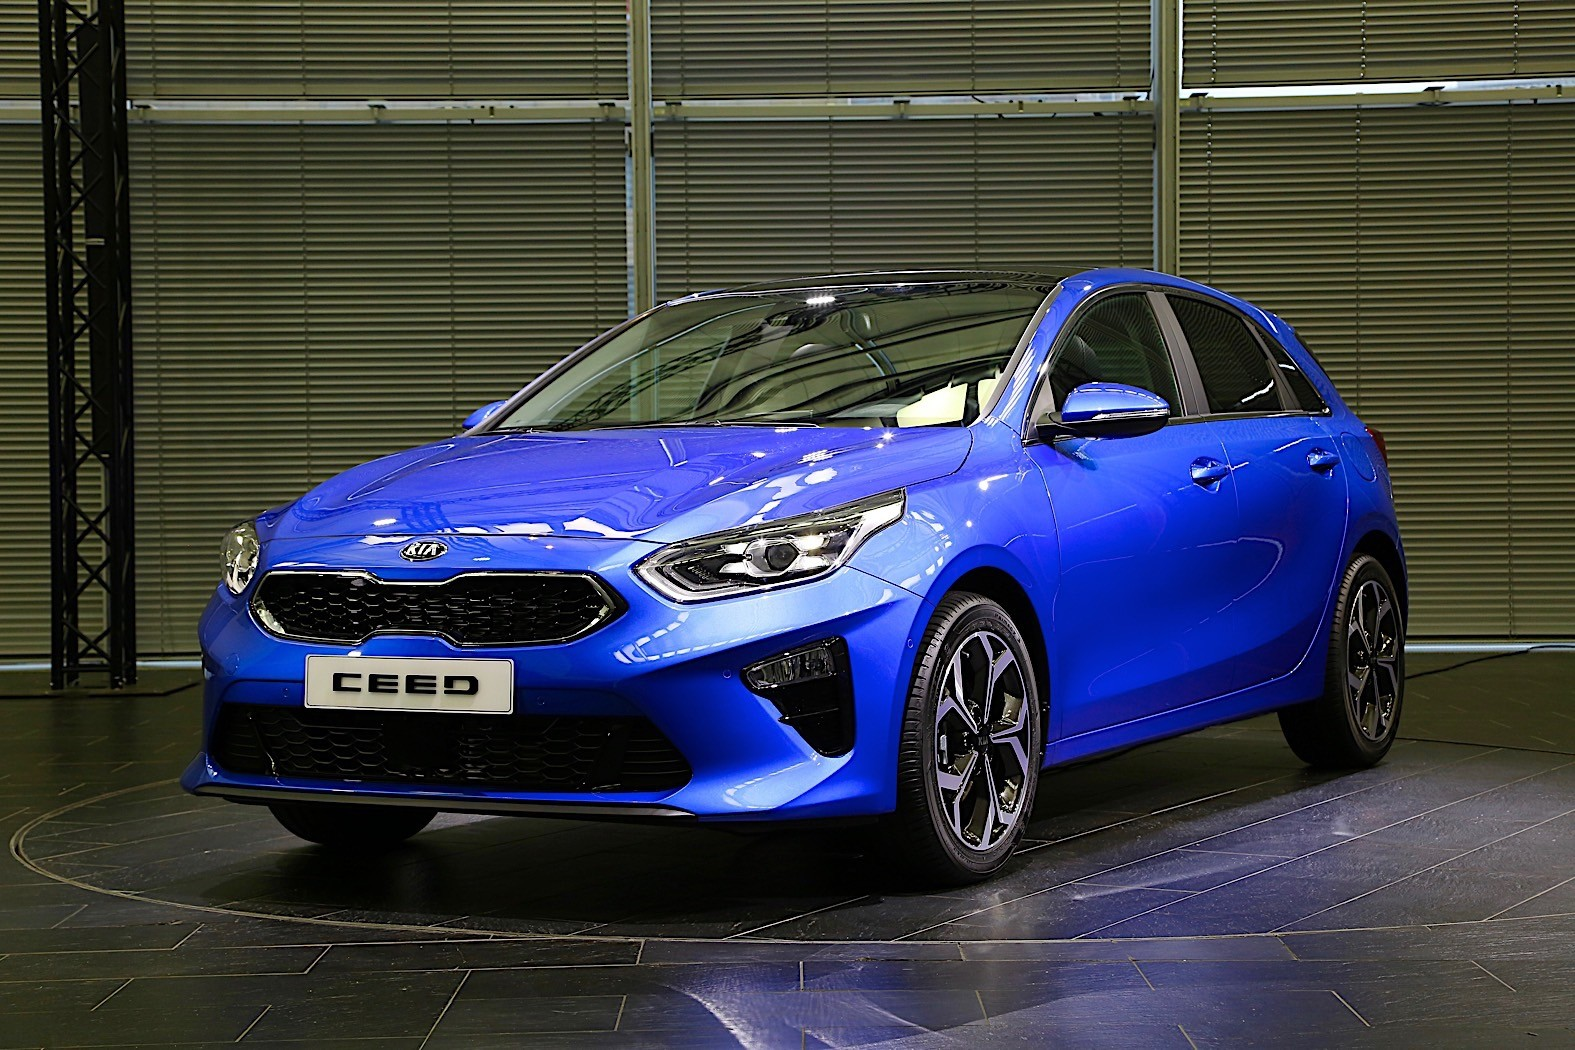 Kia Reveals New Ceed Hatchback